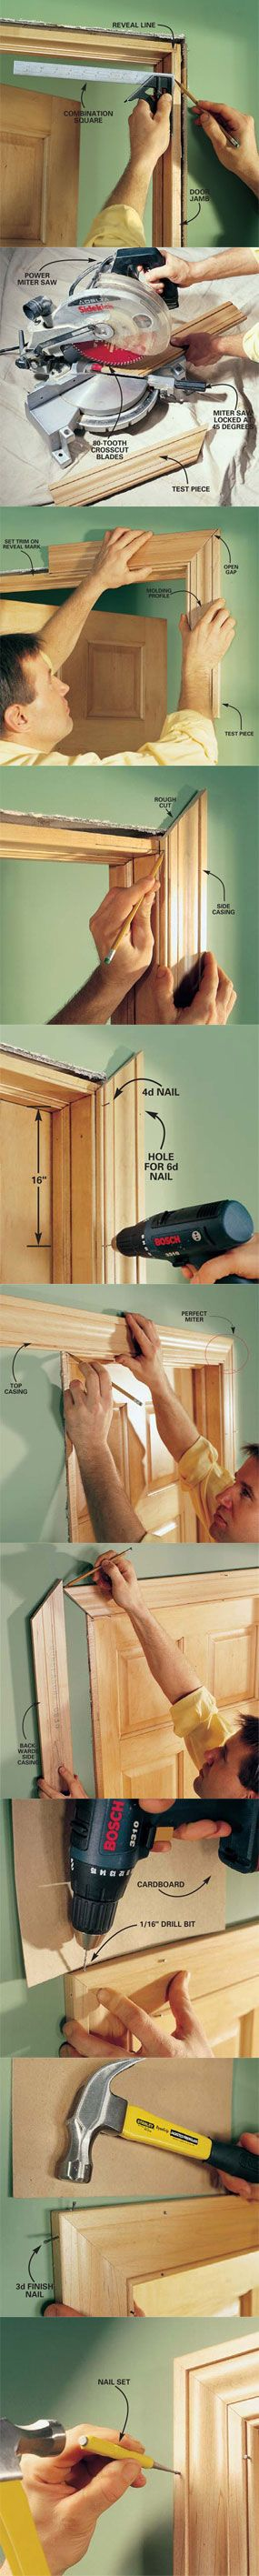 We show you how to make crisp, sharp corners and tight joints when installing door trim. With a few basic carpentry tools and a little patience, you can trim out a door quickly. With a little practice you can master the two key trim techniques, mitering and coping. Learn how to trim out a door at http://www.familyhandyman.com/DIY-Projects/Trim/Trim-Carpentry/interior-trim-work-basics/View-All